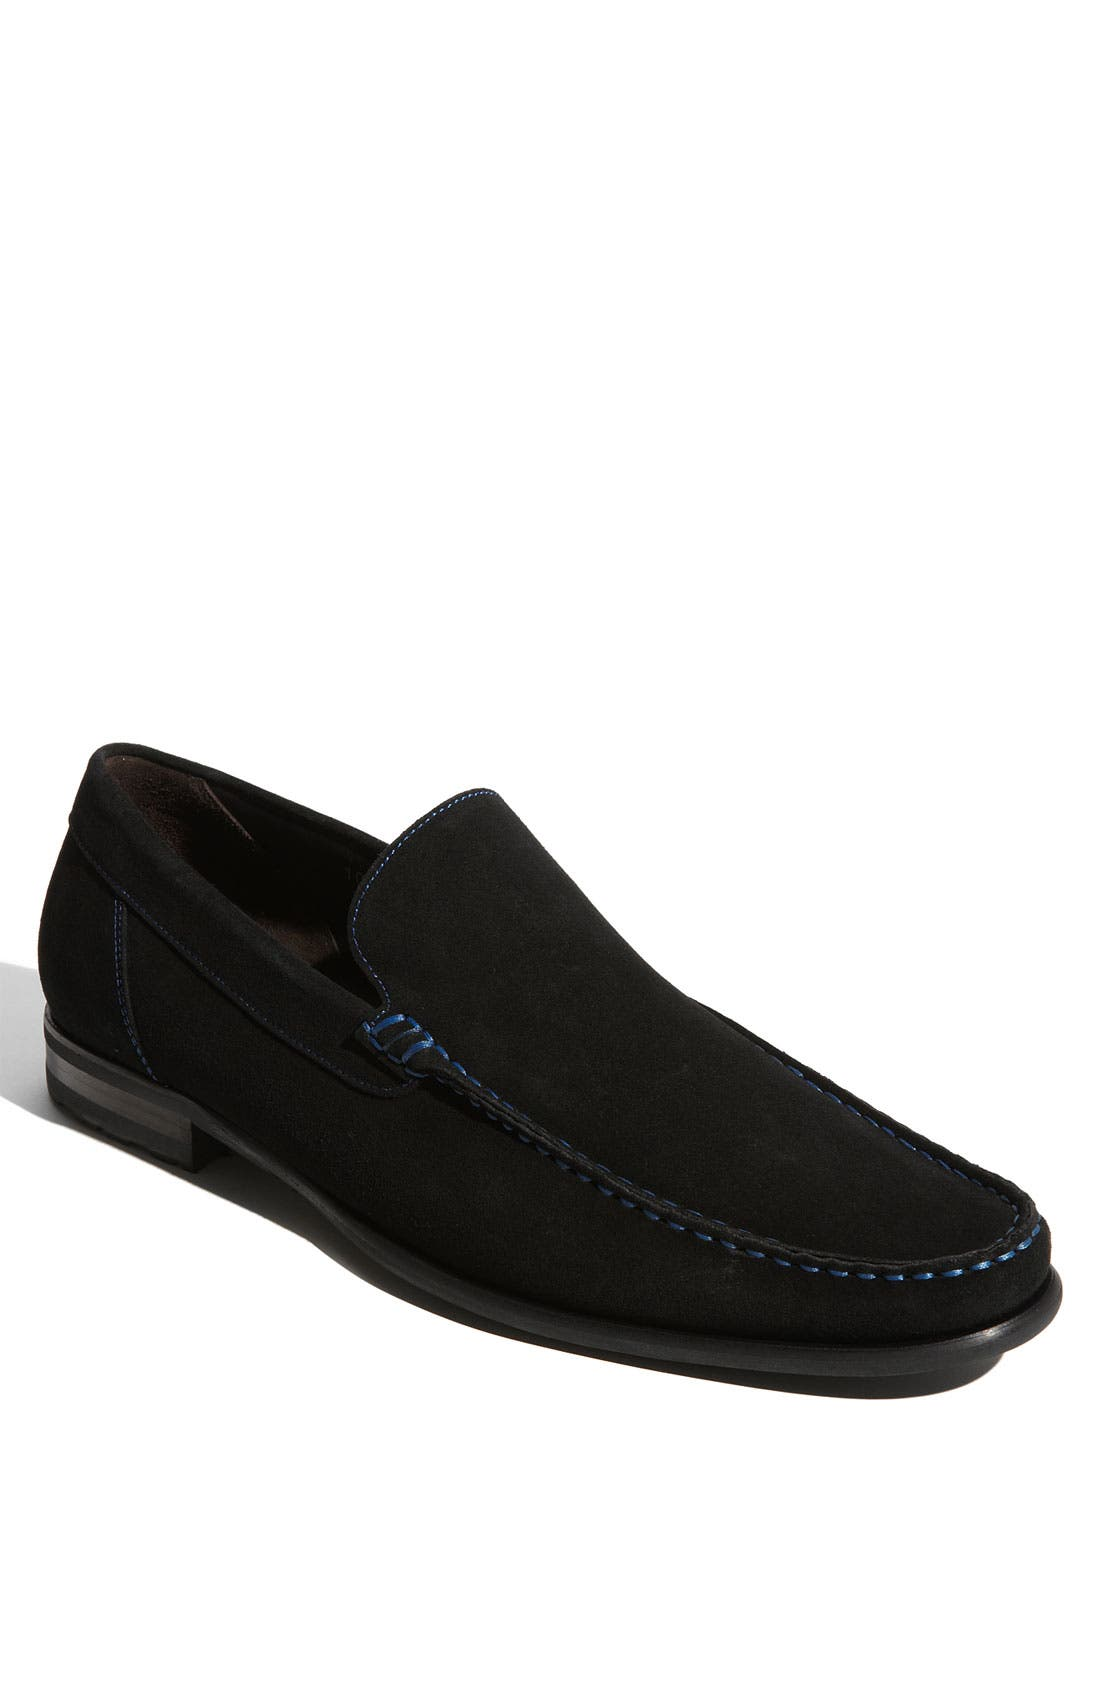 Alternate Image 1 Selected - To Boot New York 'Colby' Loafer